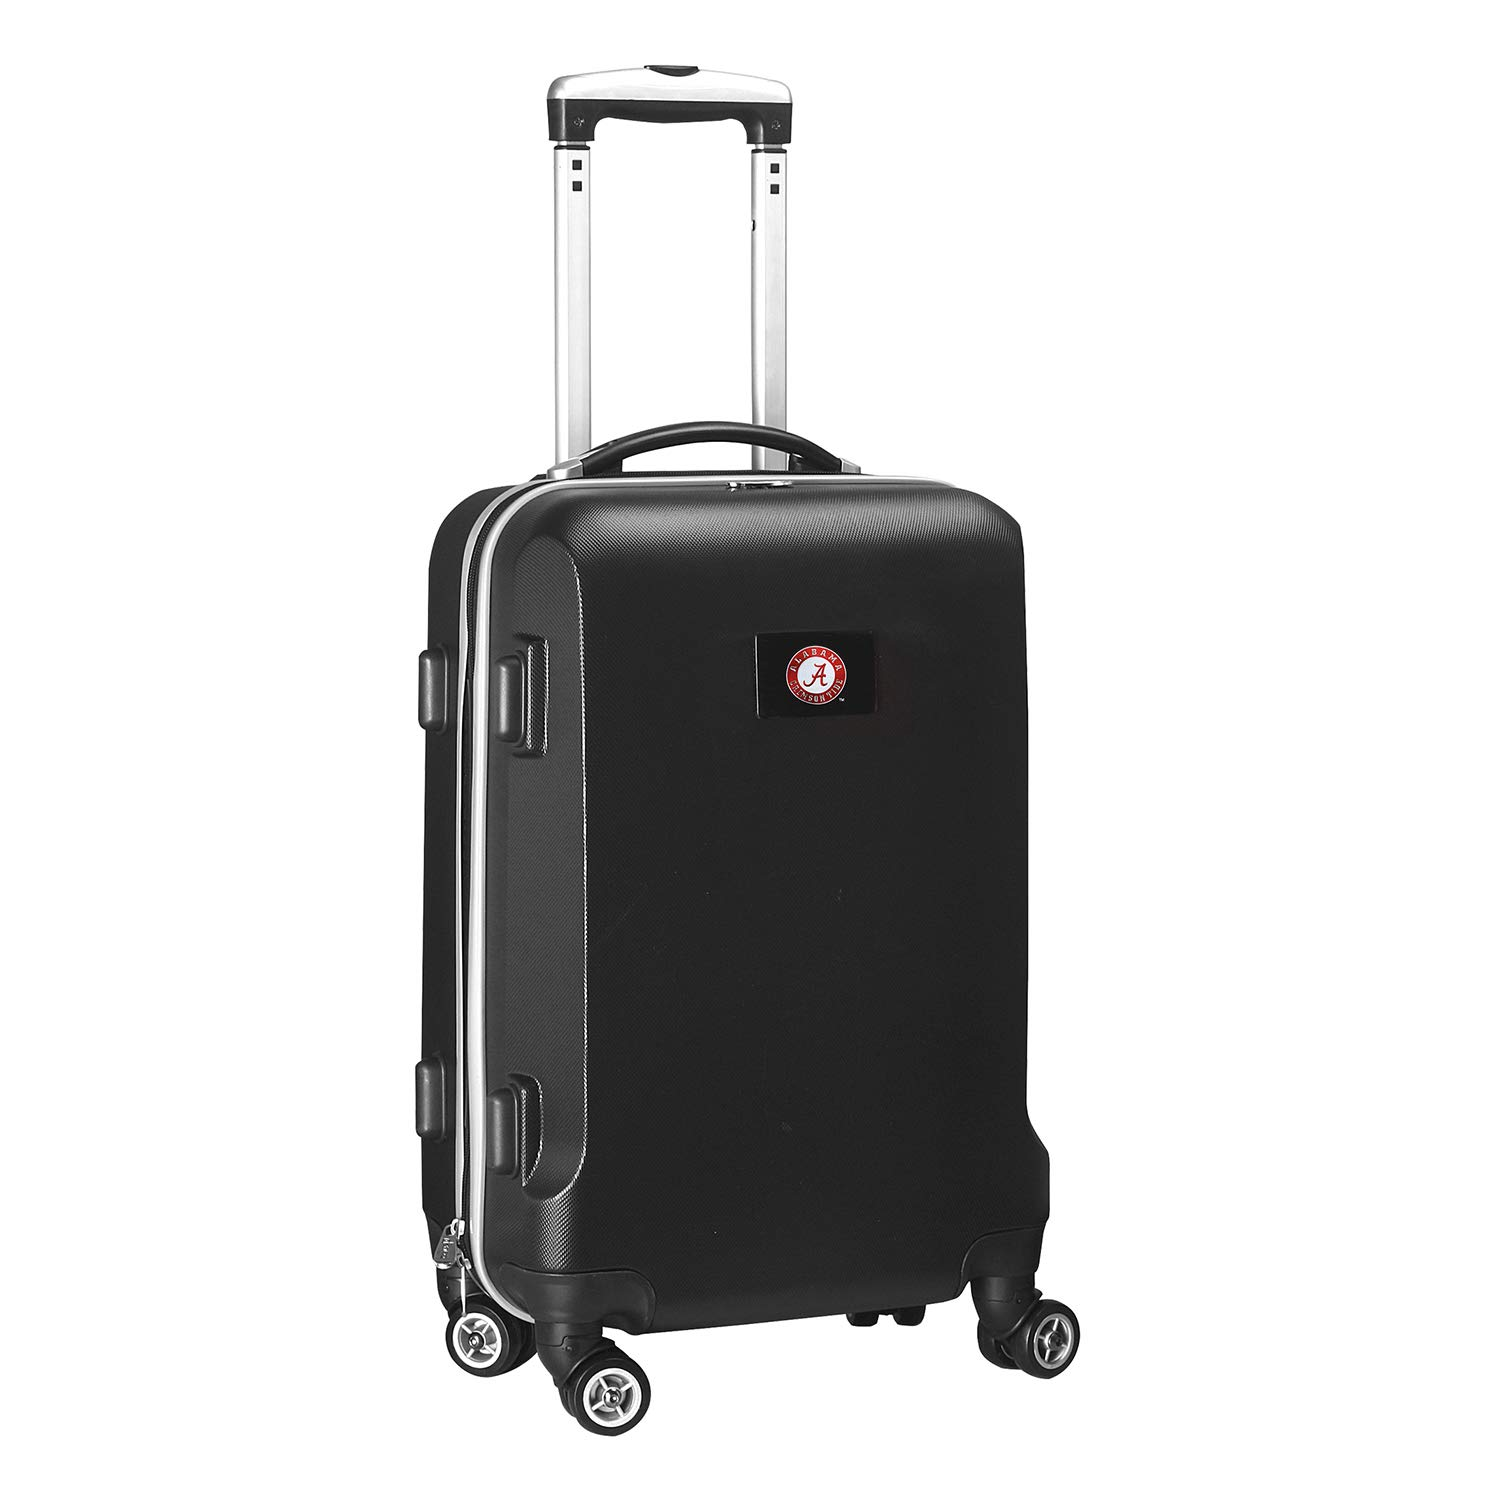 Denco NCAA Alabama Crimson Tide Carry-On Hardcase Luggage Spinner, Black